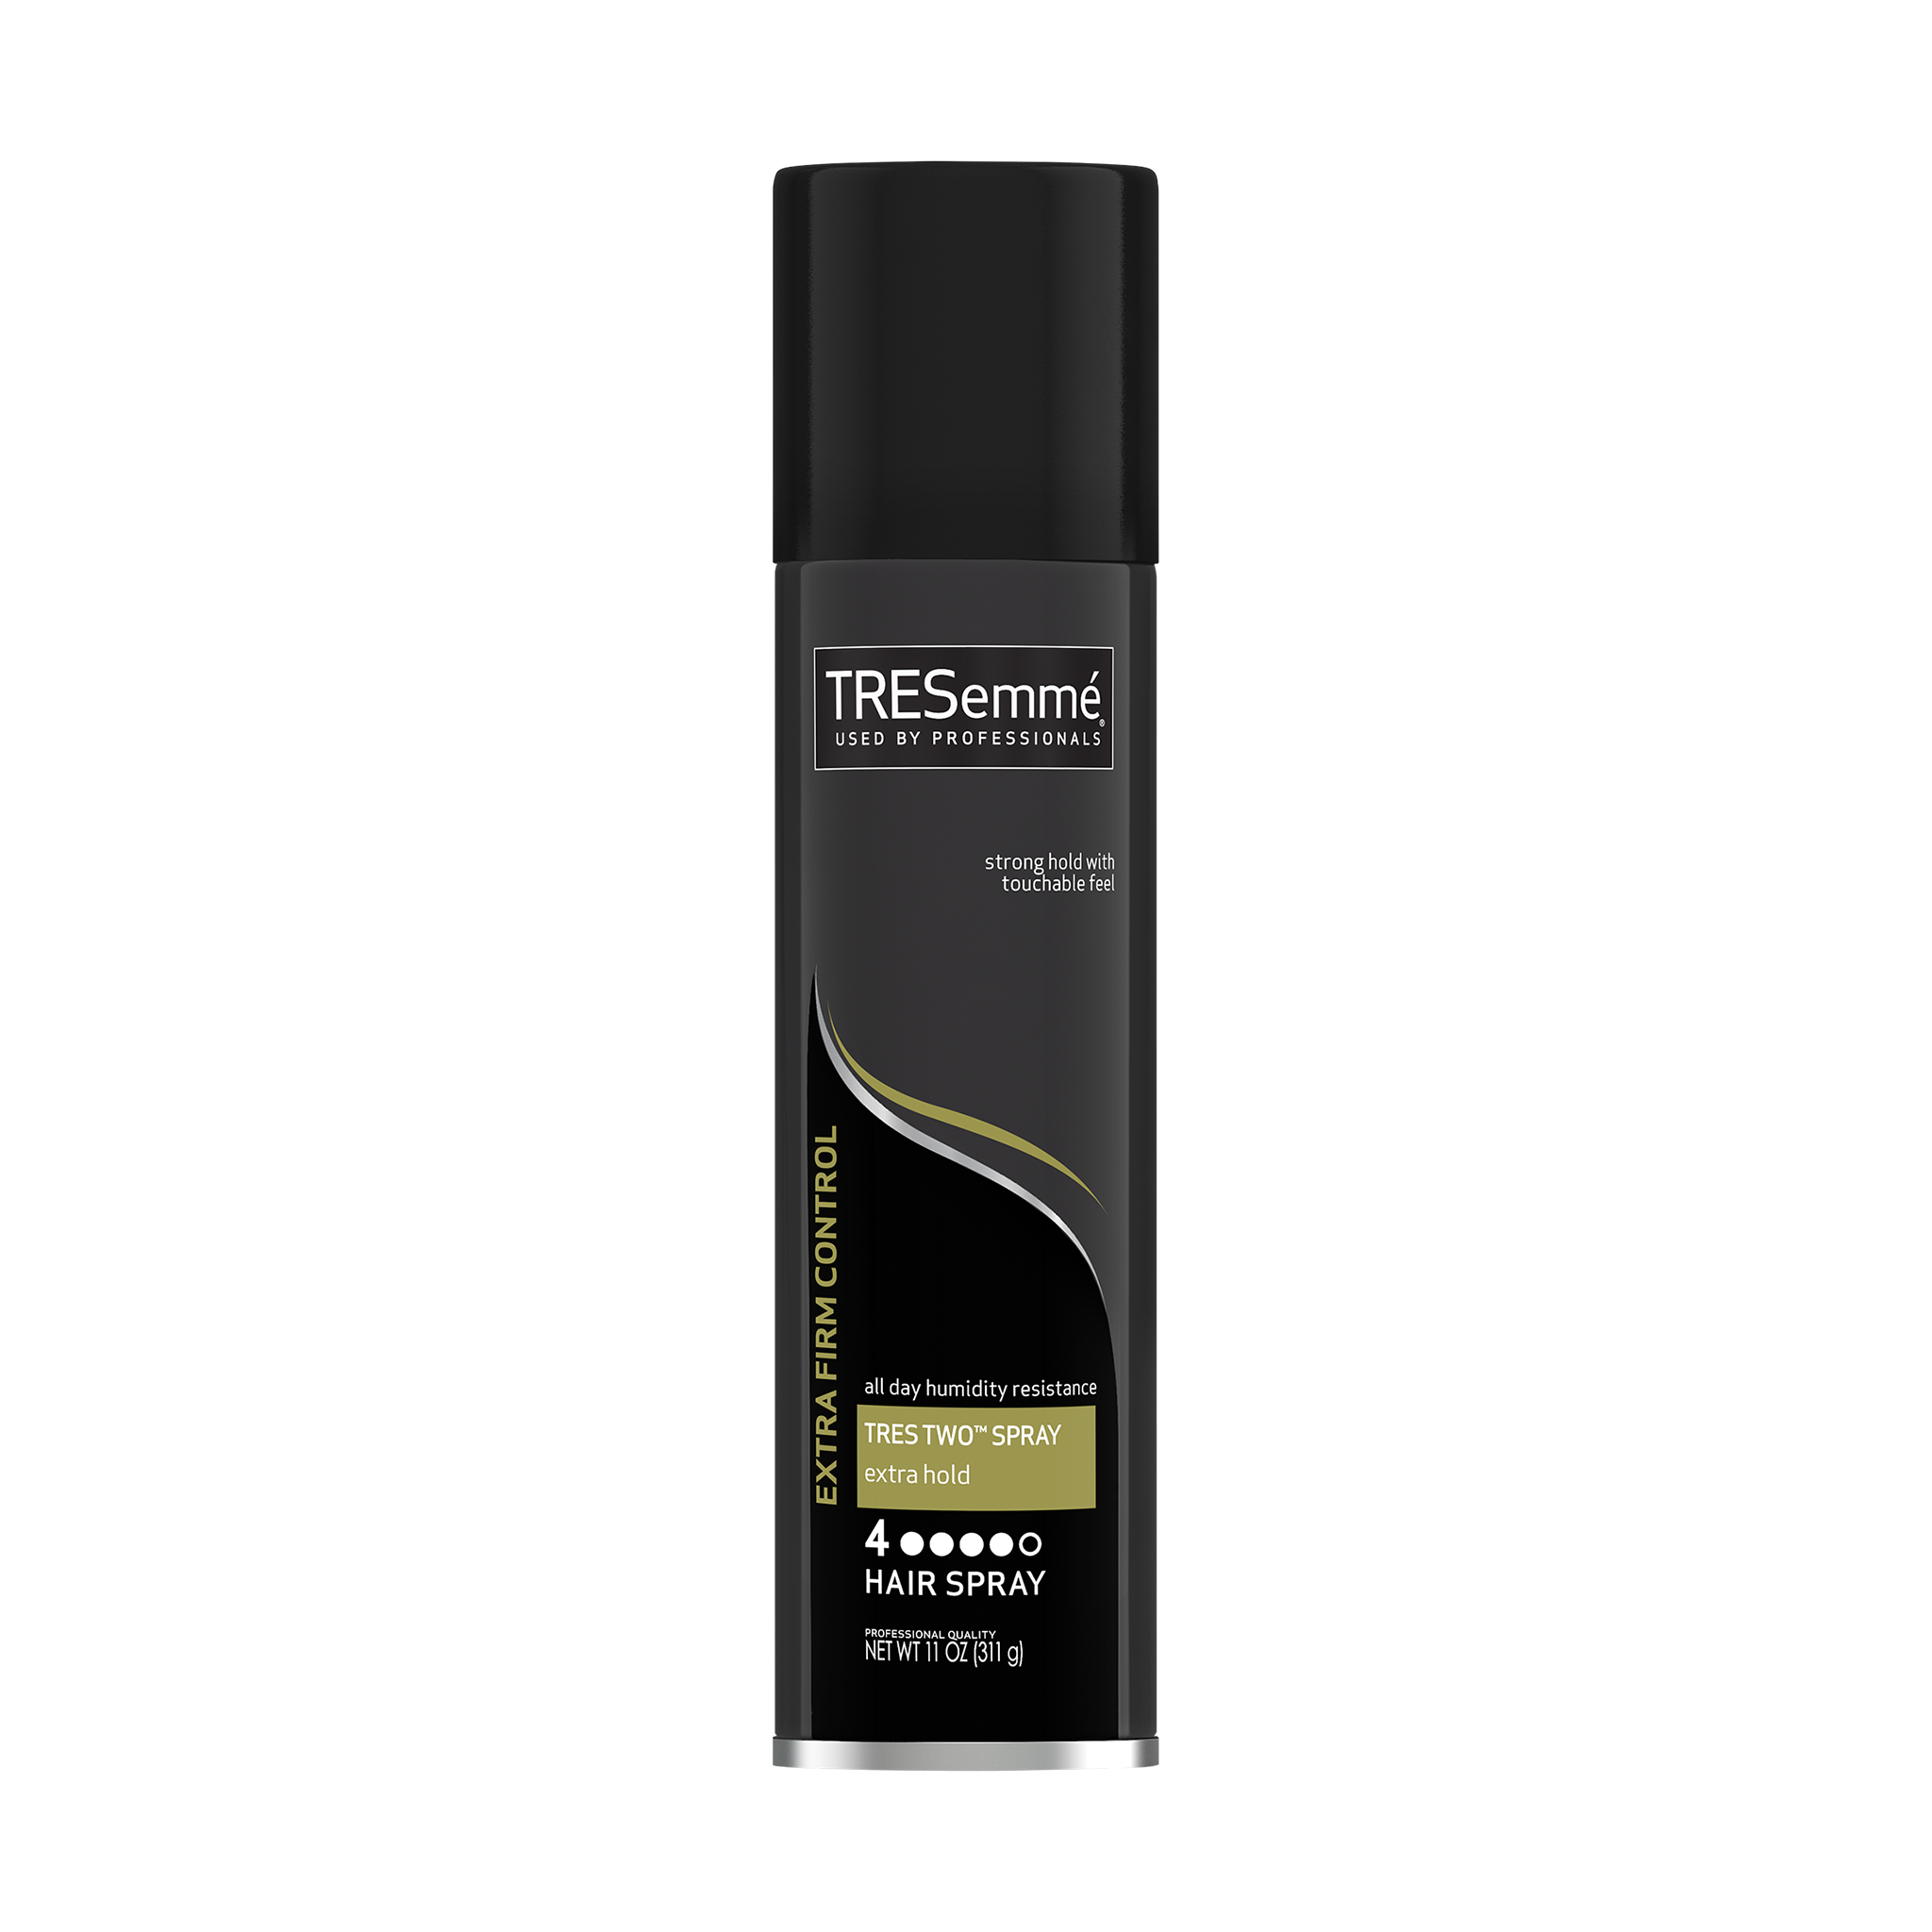 hair spray This list includes top-rated hairsprays that holds your hairstyle in place, but still keeps hair soft.